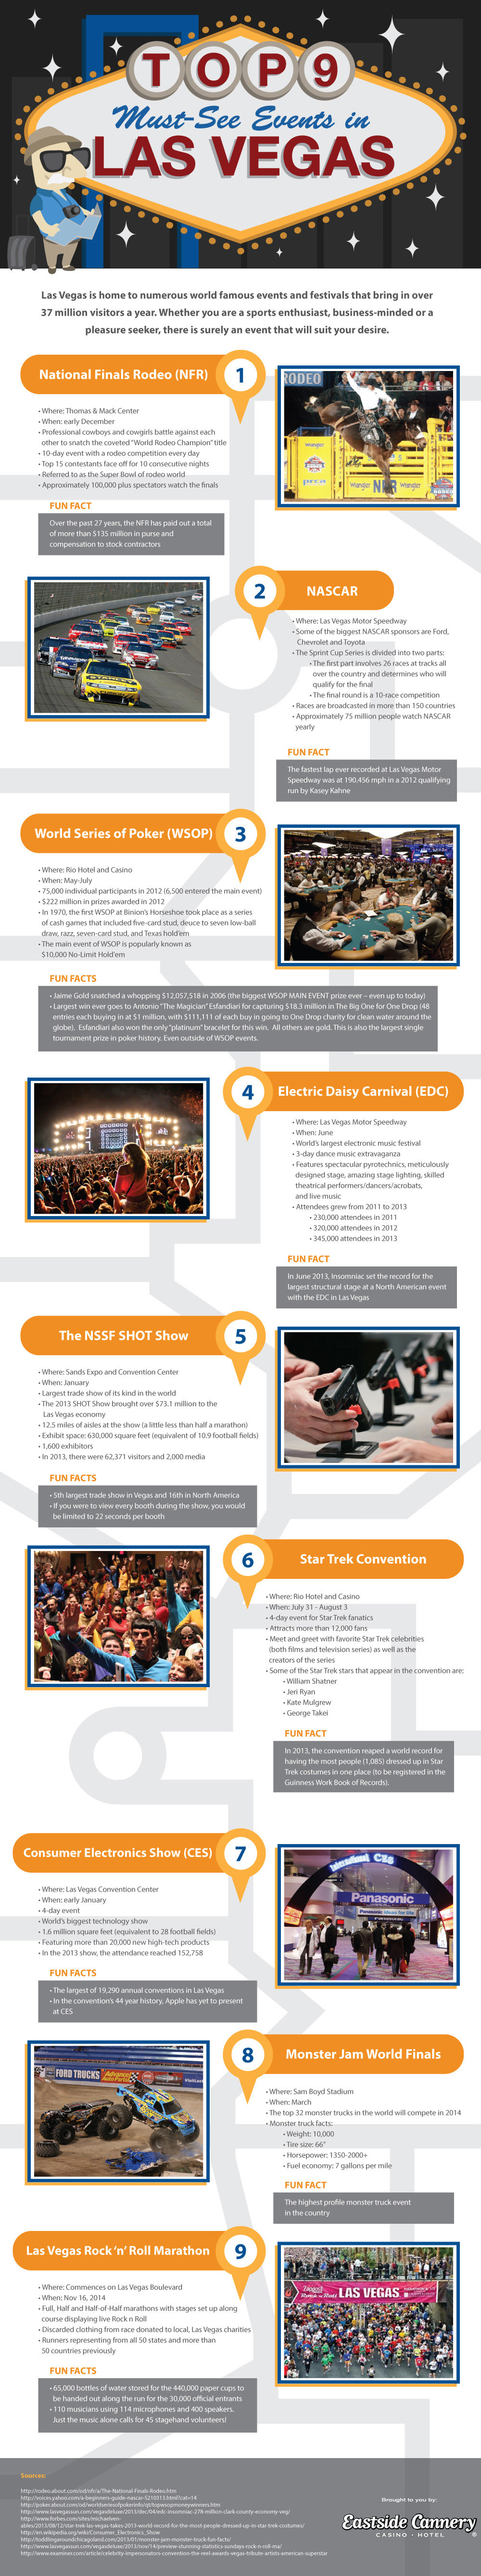 Infographic: Top 9 Must-See Events in Las Vegas